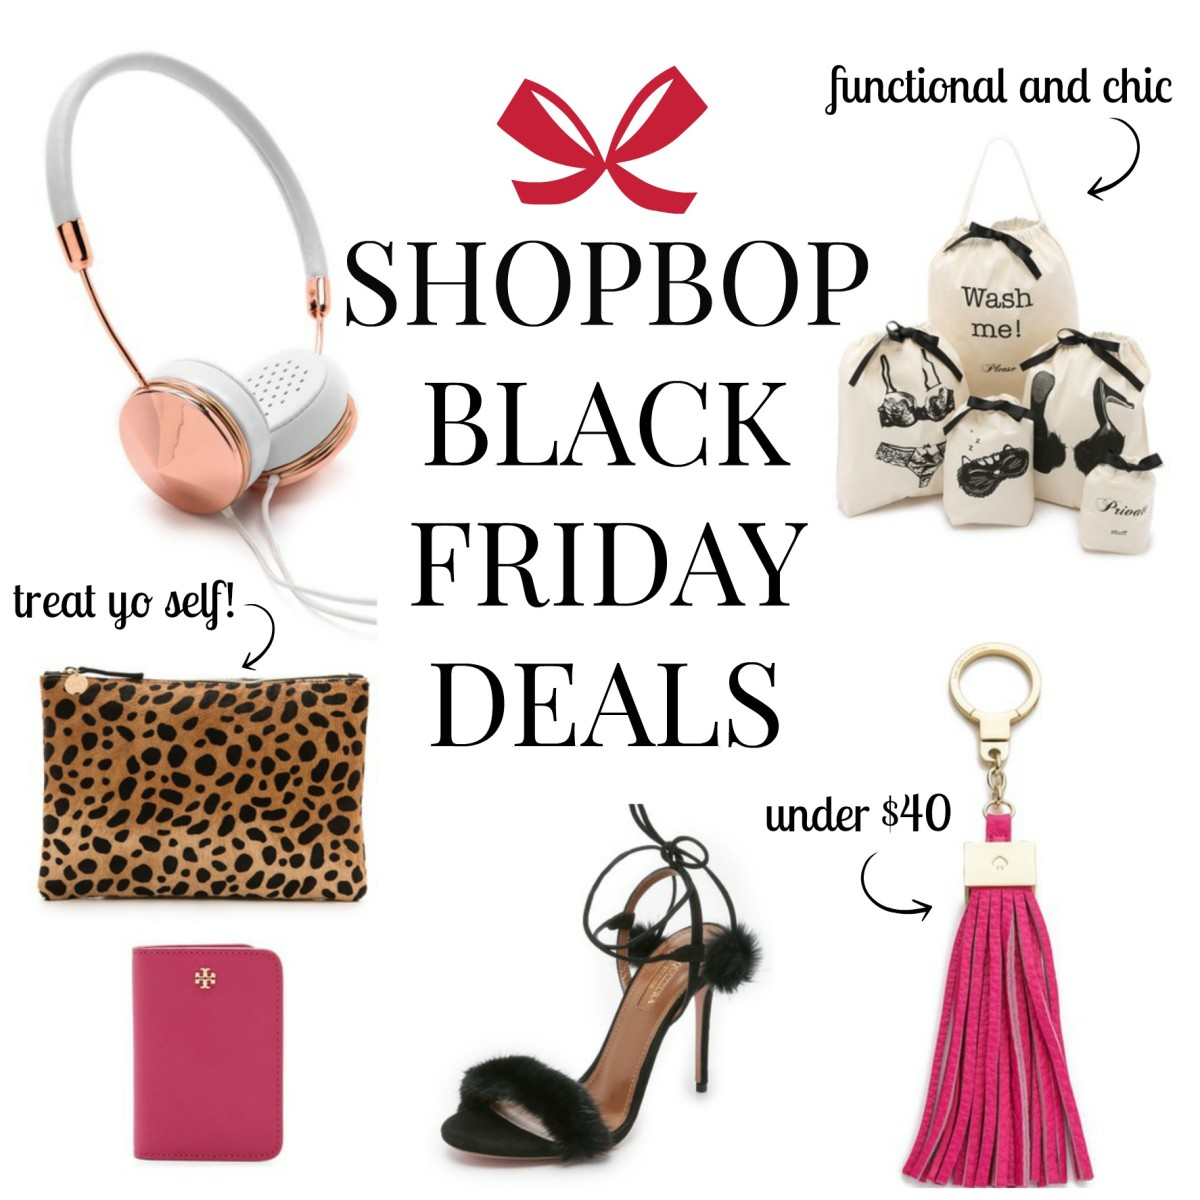 ab5724a5 Shopbop Black Friday Deals - Airelle Snyder